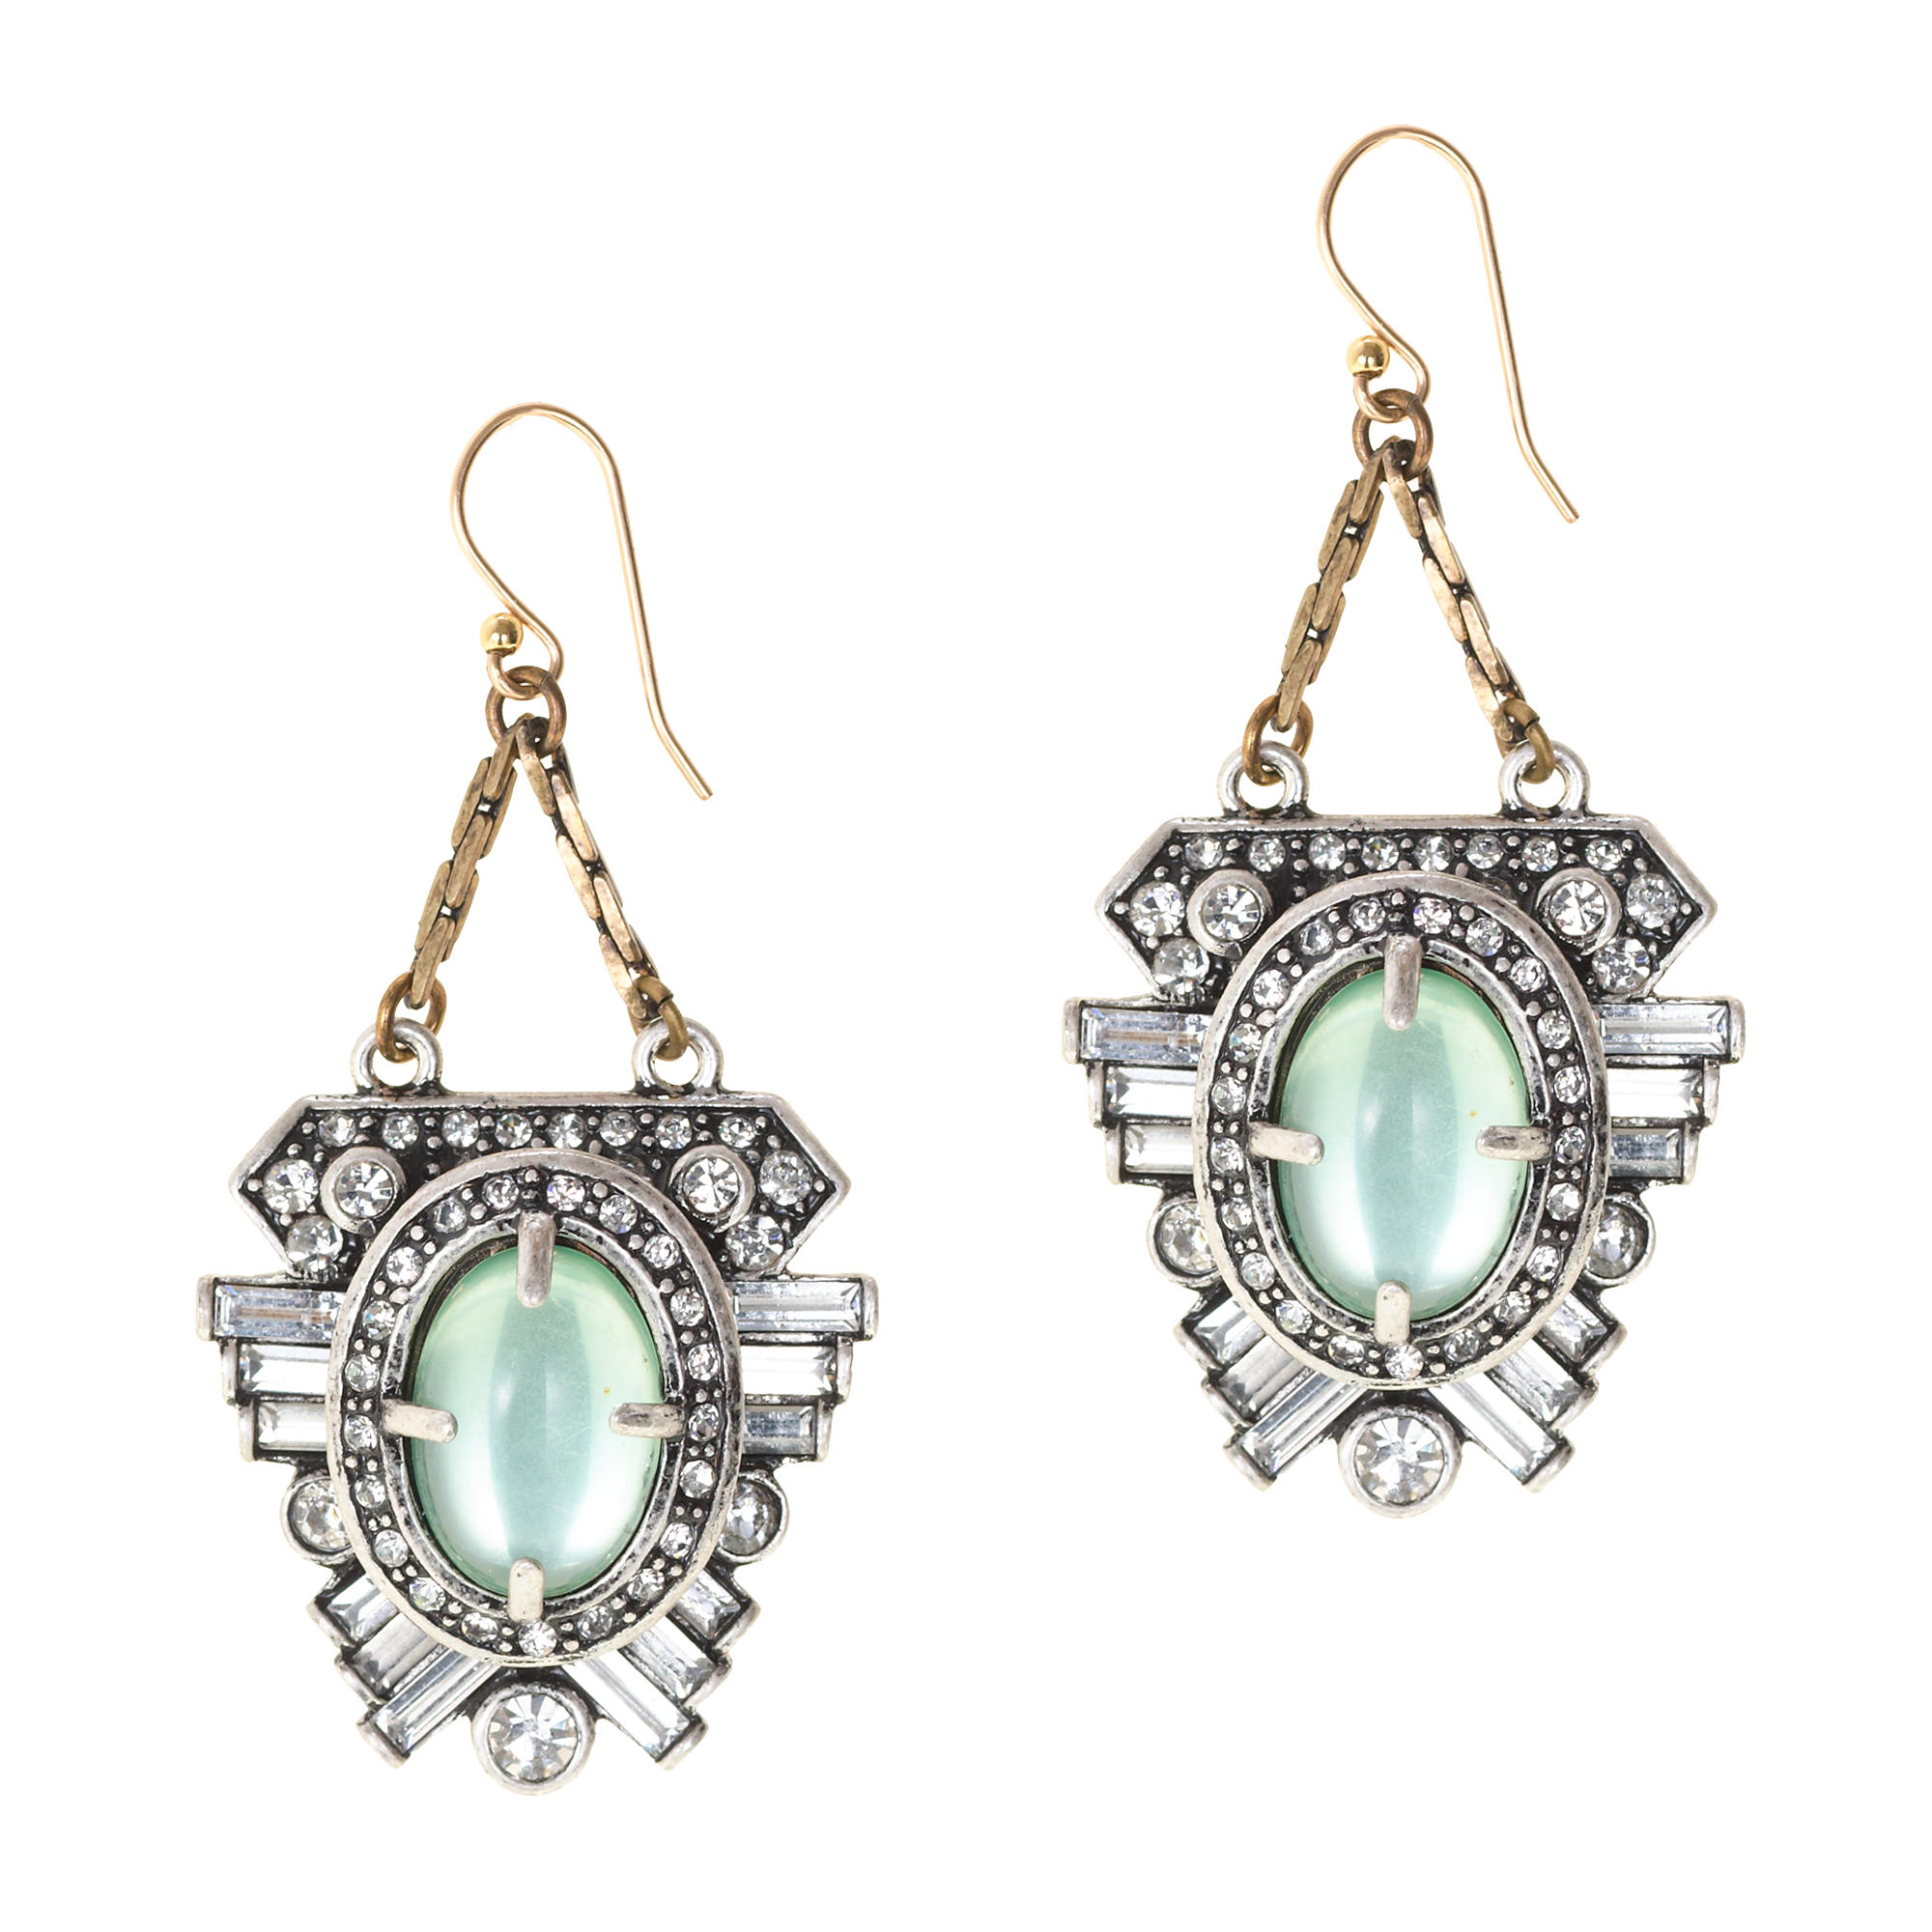 Lulu frost for j crew harvest moon earrings j crew for J crew jewelry 2015